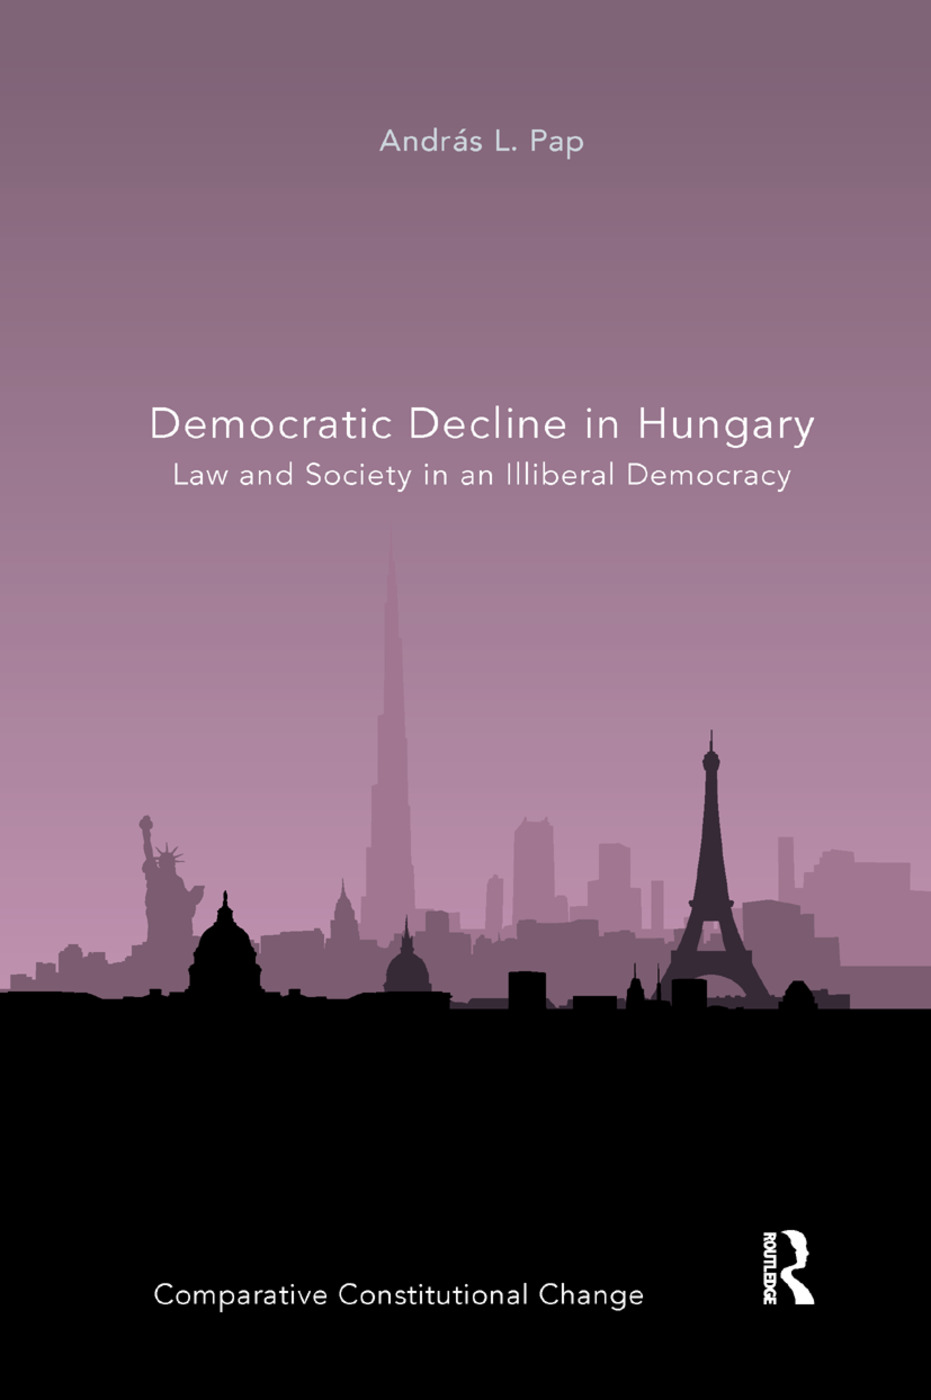 Democratic Decline in Hungary: Law and Society in an Illiberal Democracy book cover